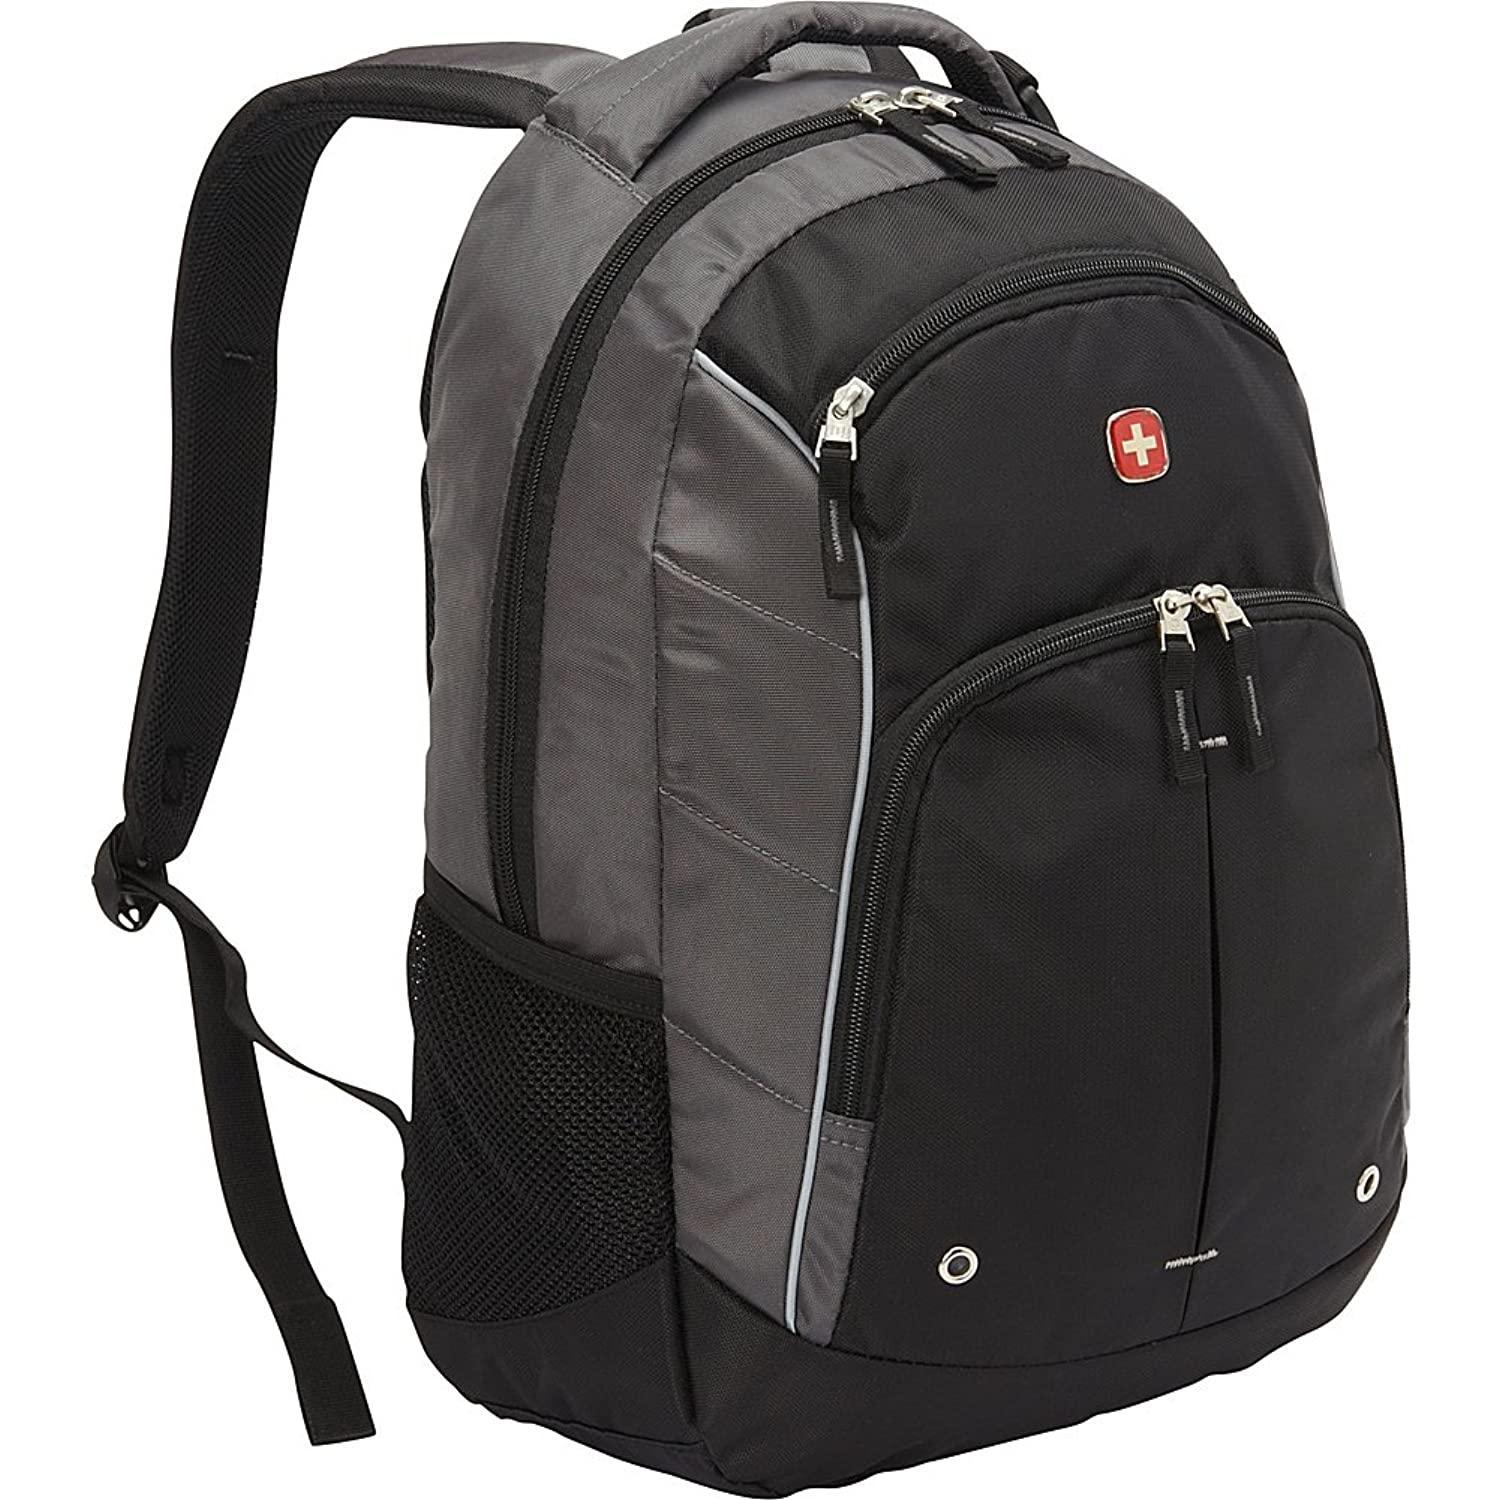 Amazon.com: SwissGear Lightweight Laptop Backpack with Phone and ...